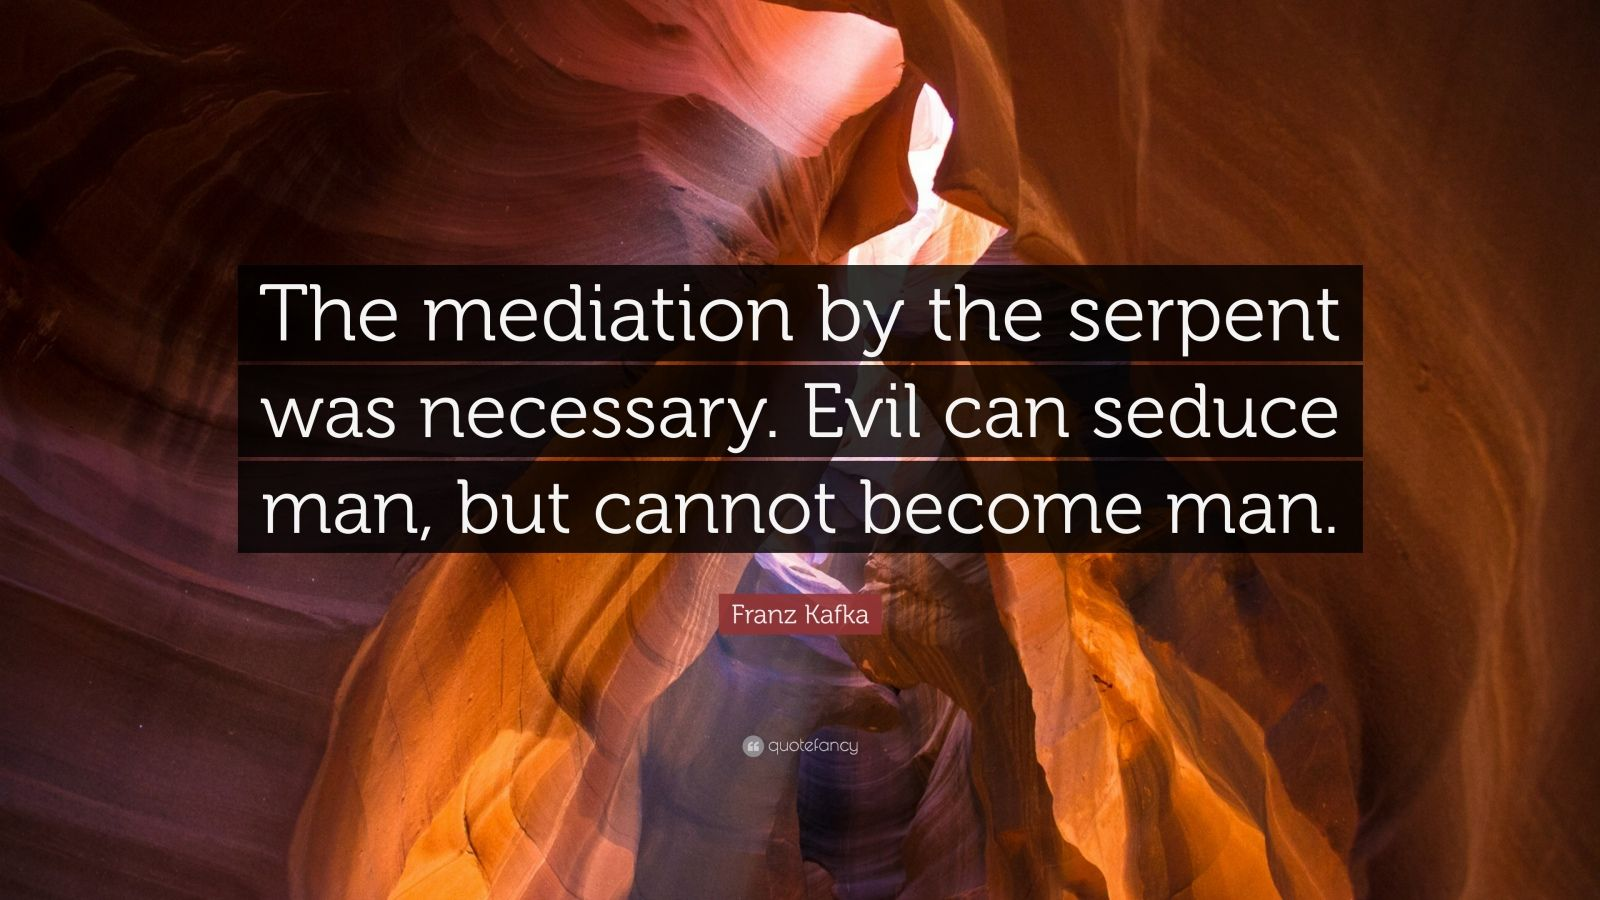 """Franz Kafka Quote: """"The mediation by the serpent was necessary. Evil can seduce man, but cannot become man."""""""